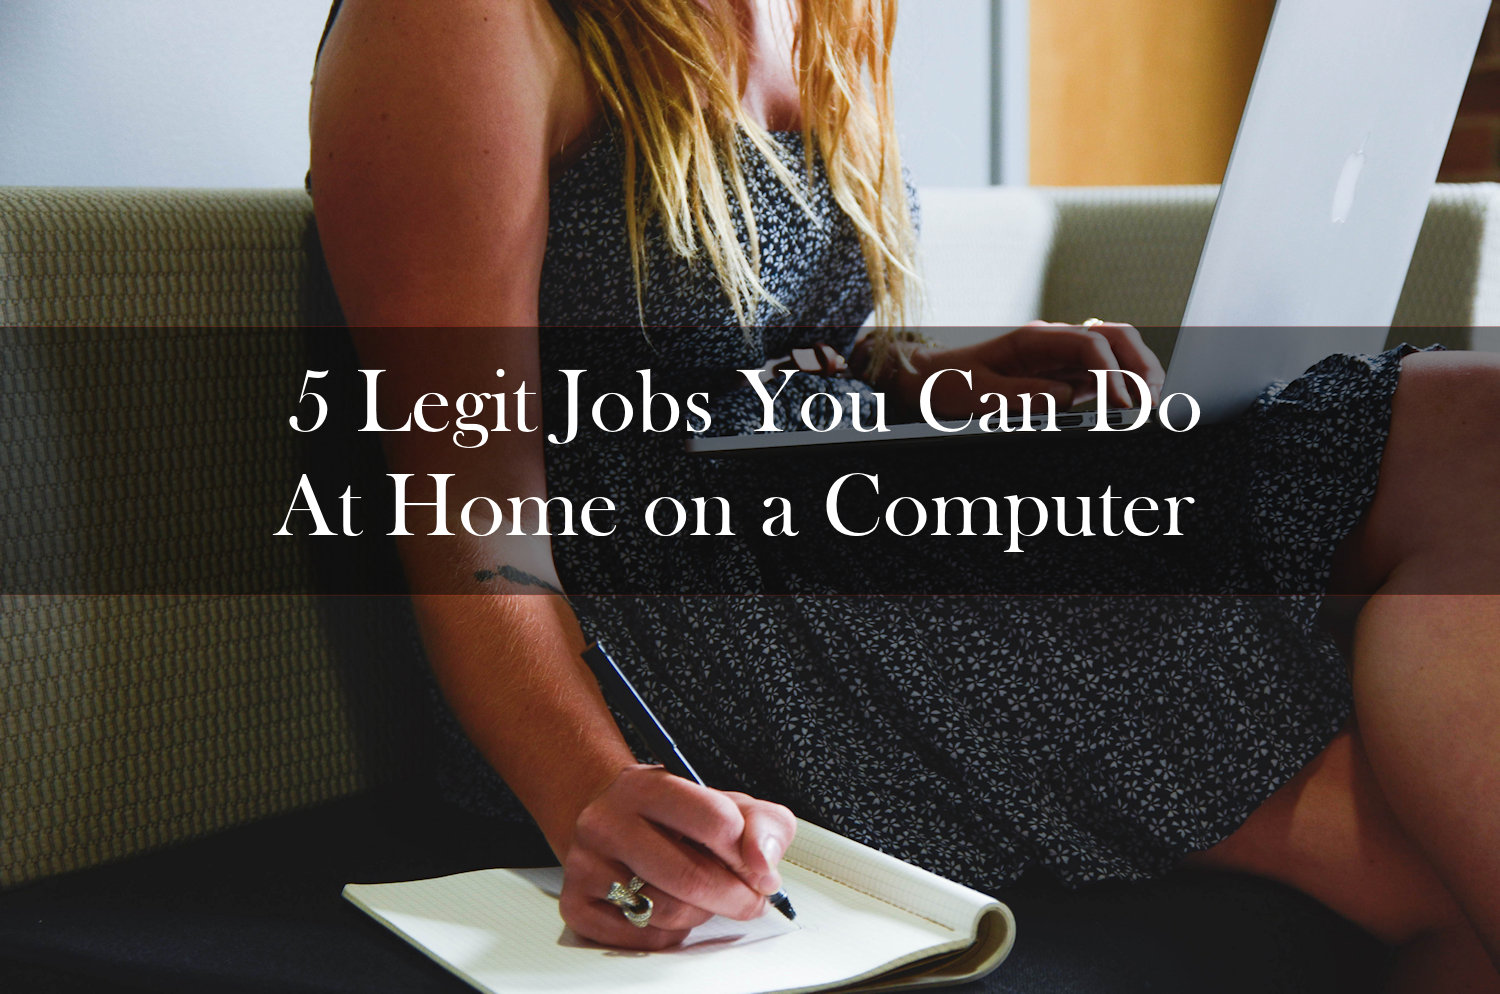 work from home 5 legitimate jobs you can do at home on a computer